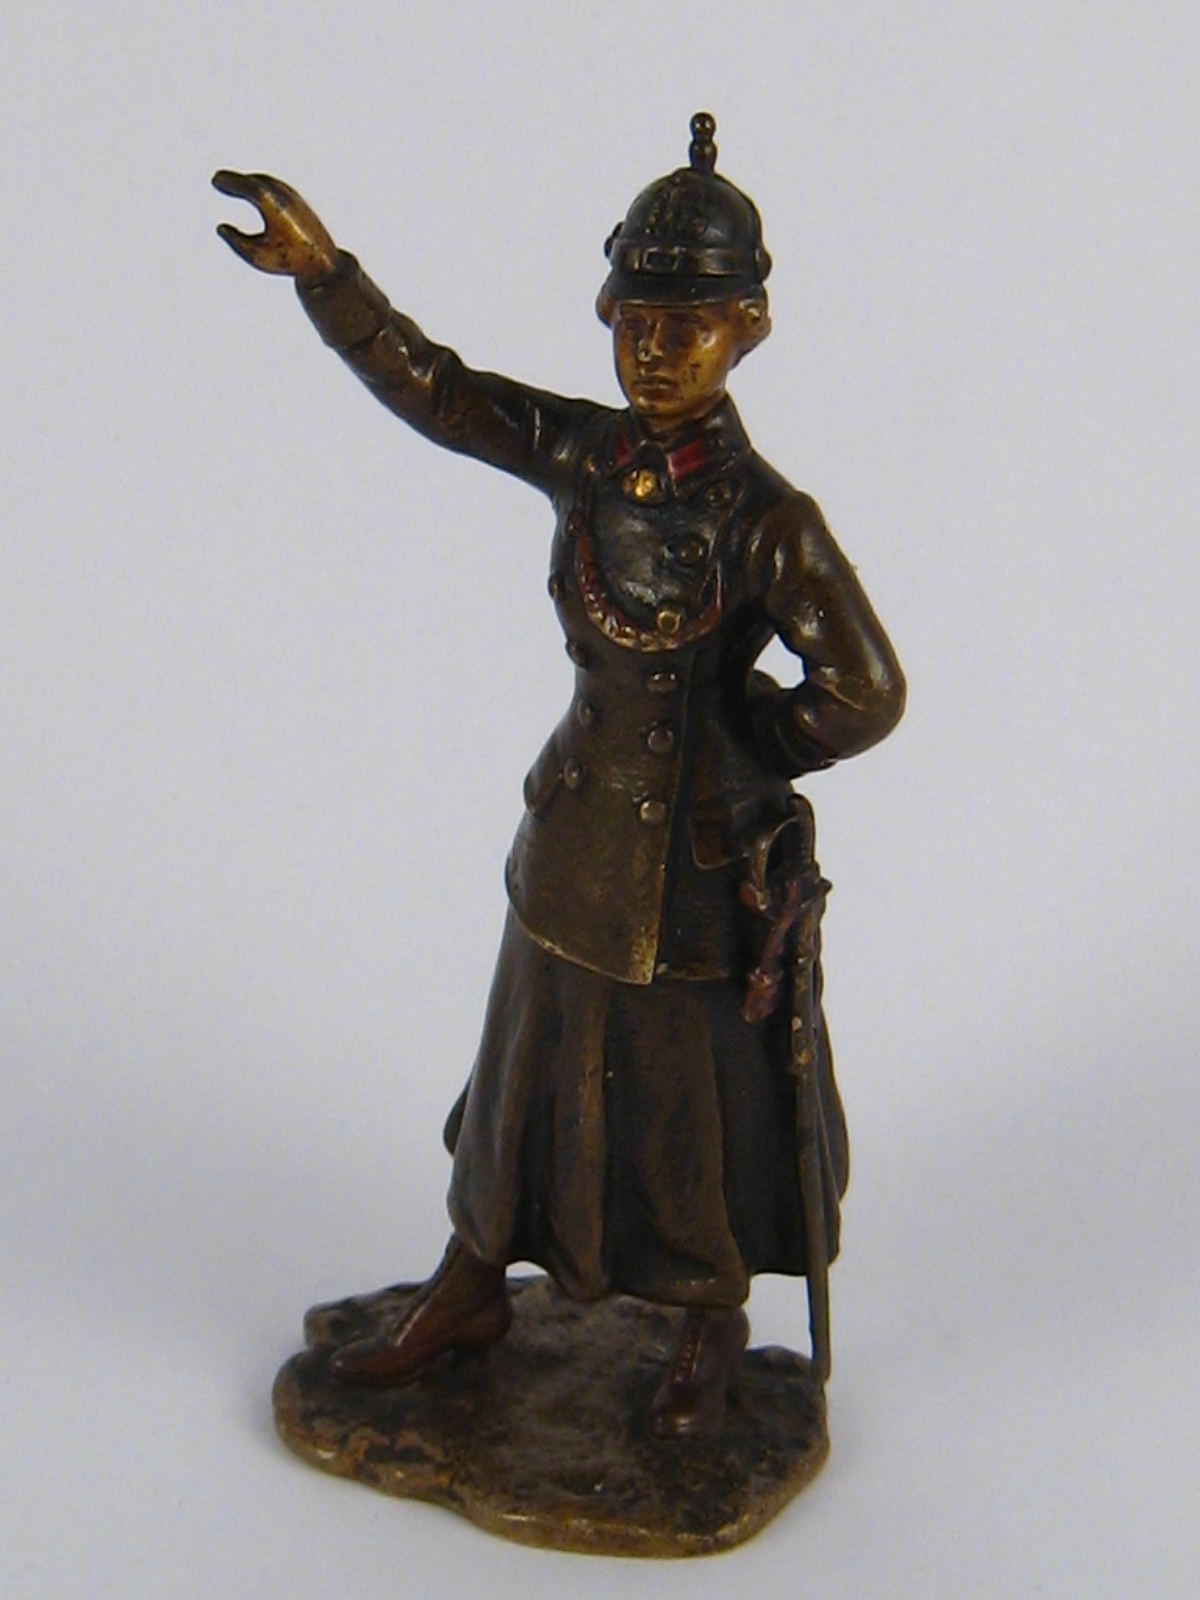 Lot 360 - A cold painted Austrian bronze figure of a woman officer wearing a pickelhalb helmet,